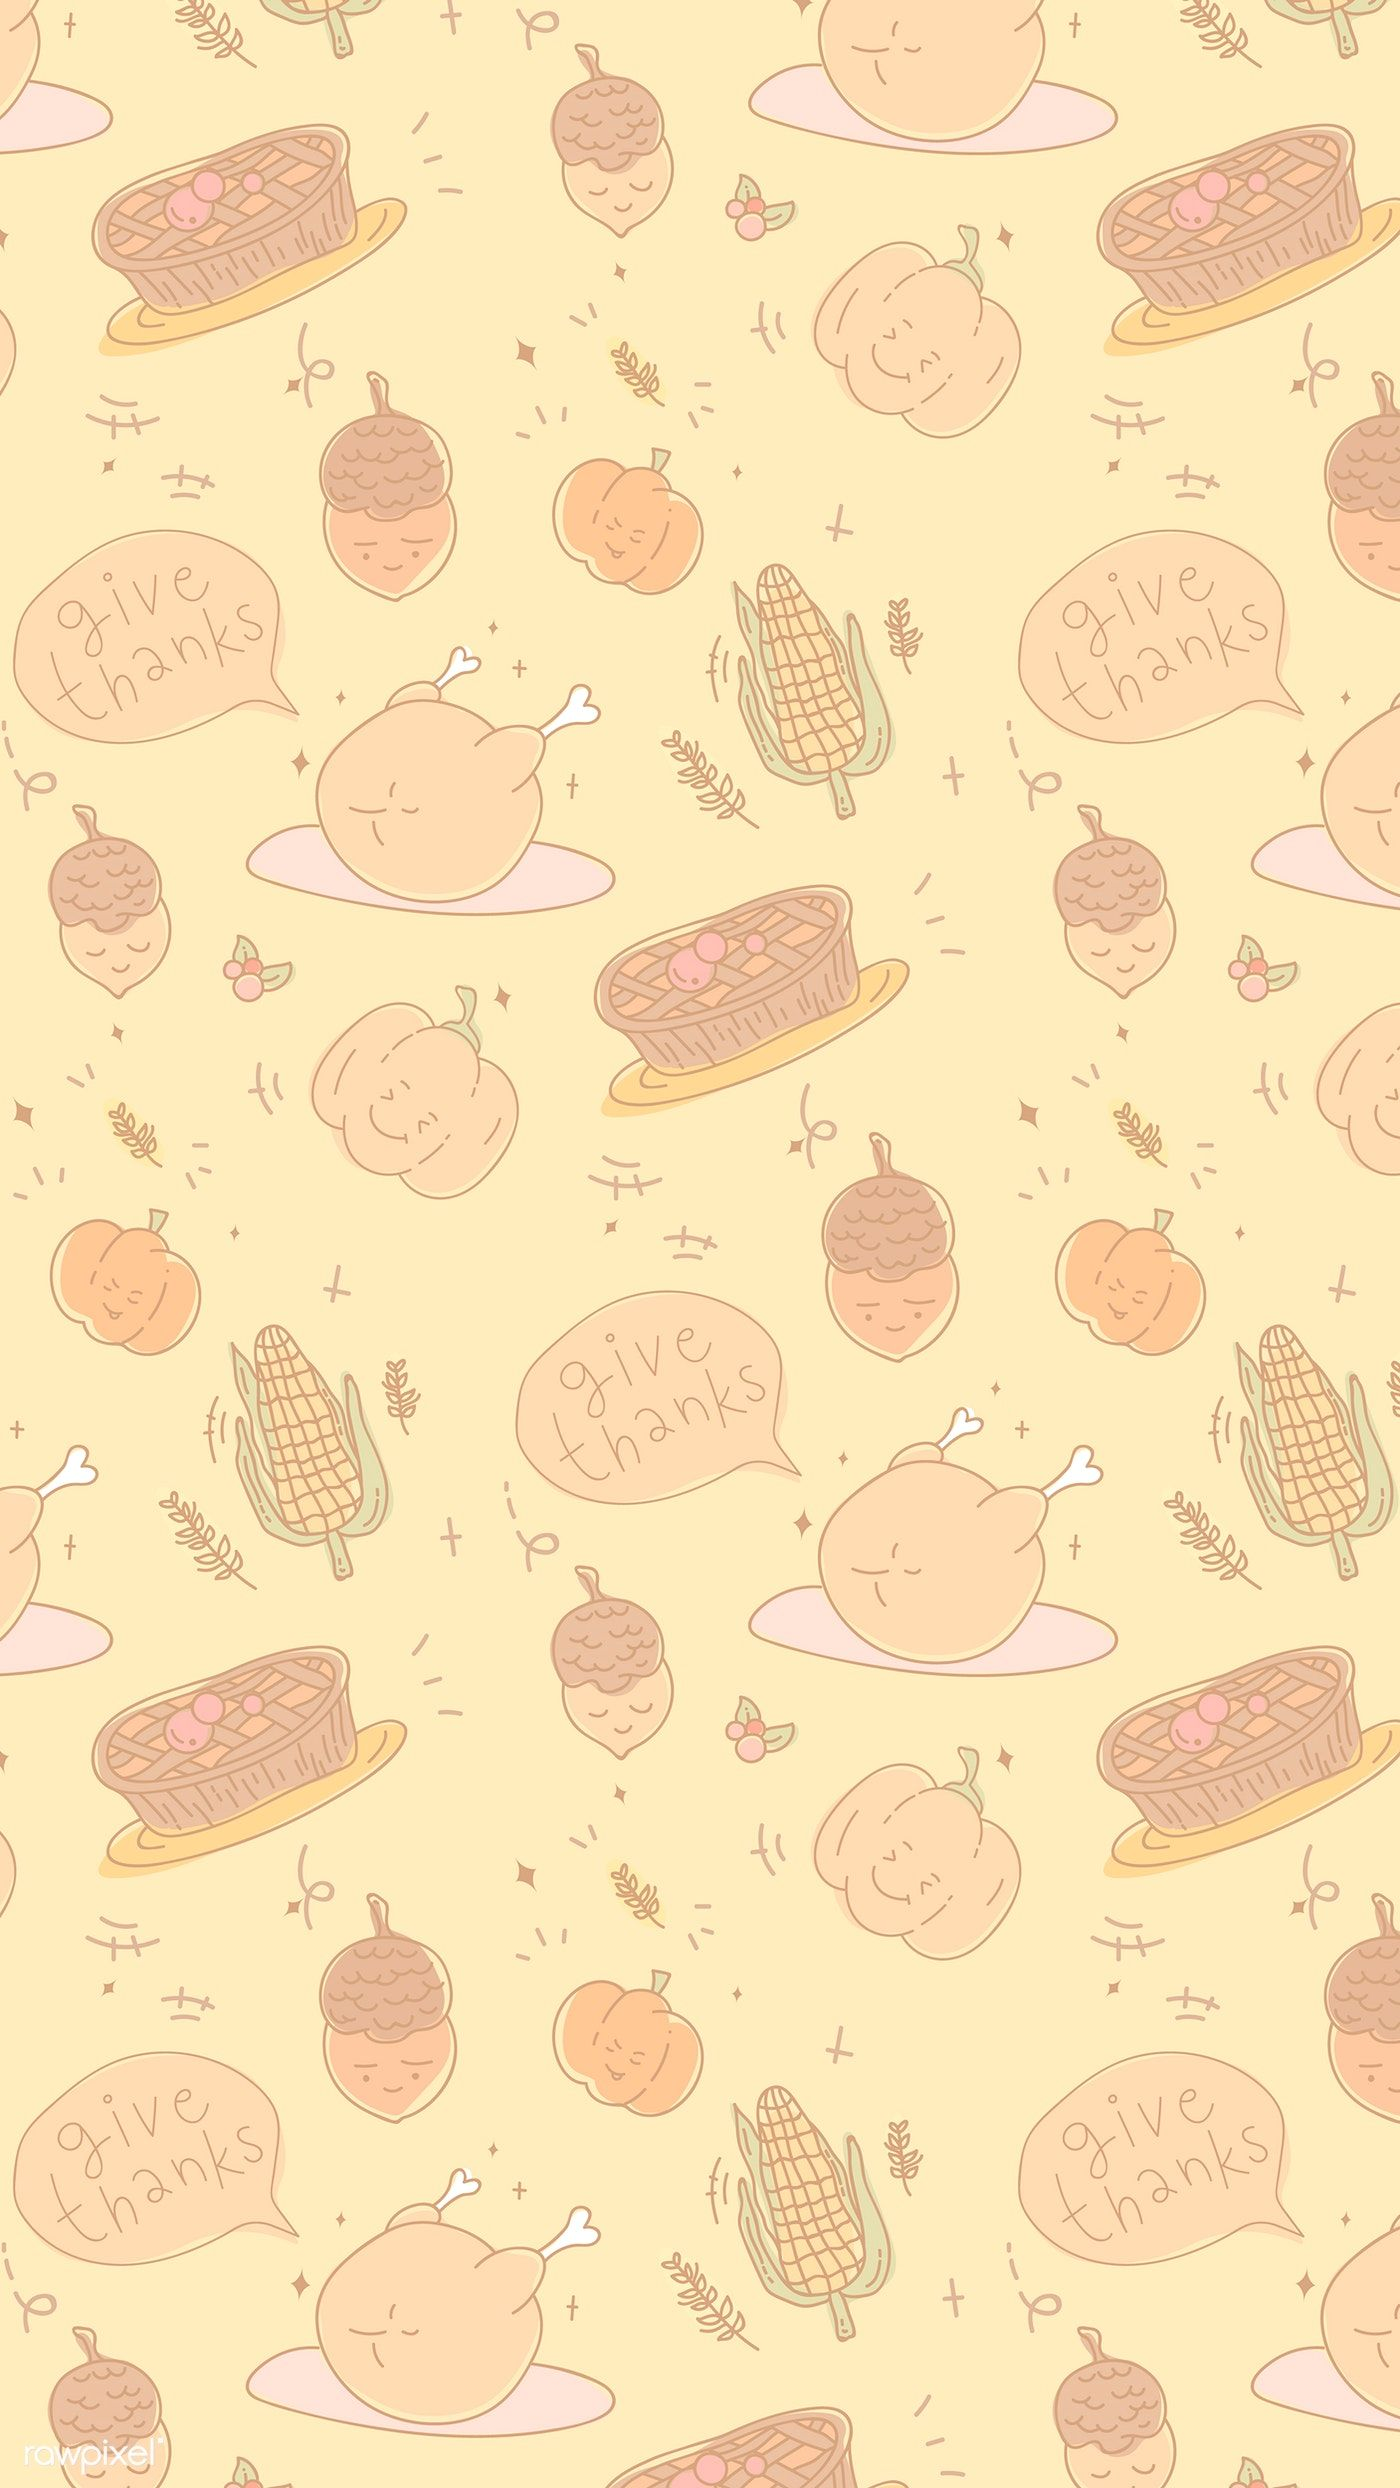 Download Premium Vector Of Thanksgiving Elements Seamless Patterned Mobile Thanksgiving Iphone Wallpaper Thanksgiving Wallpaper Cool Wallpapers For Phones